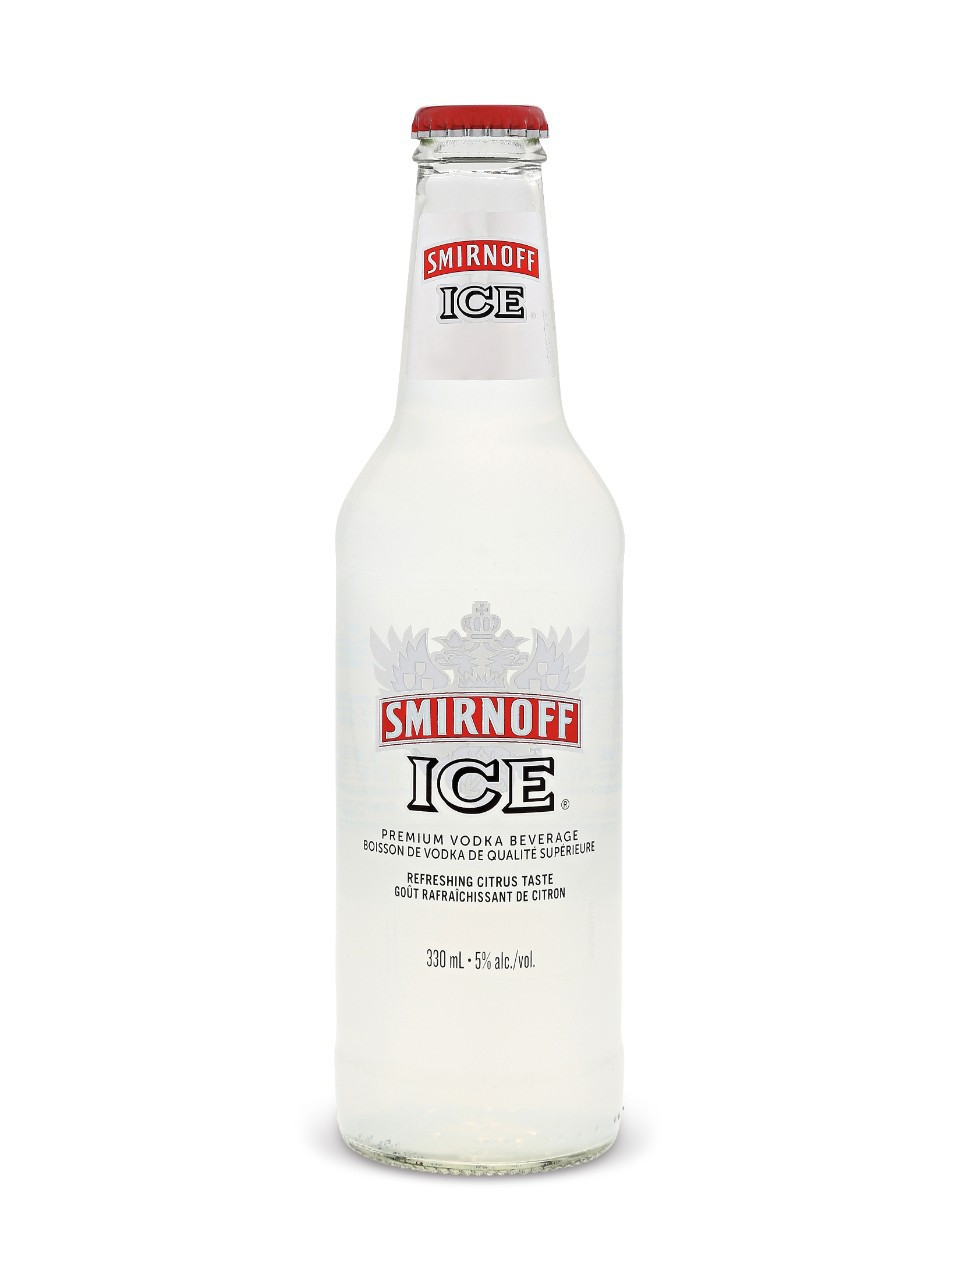 Smirnoff - Original 12oz - 12 Bottles